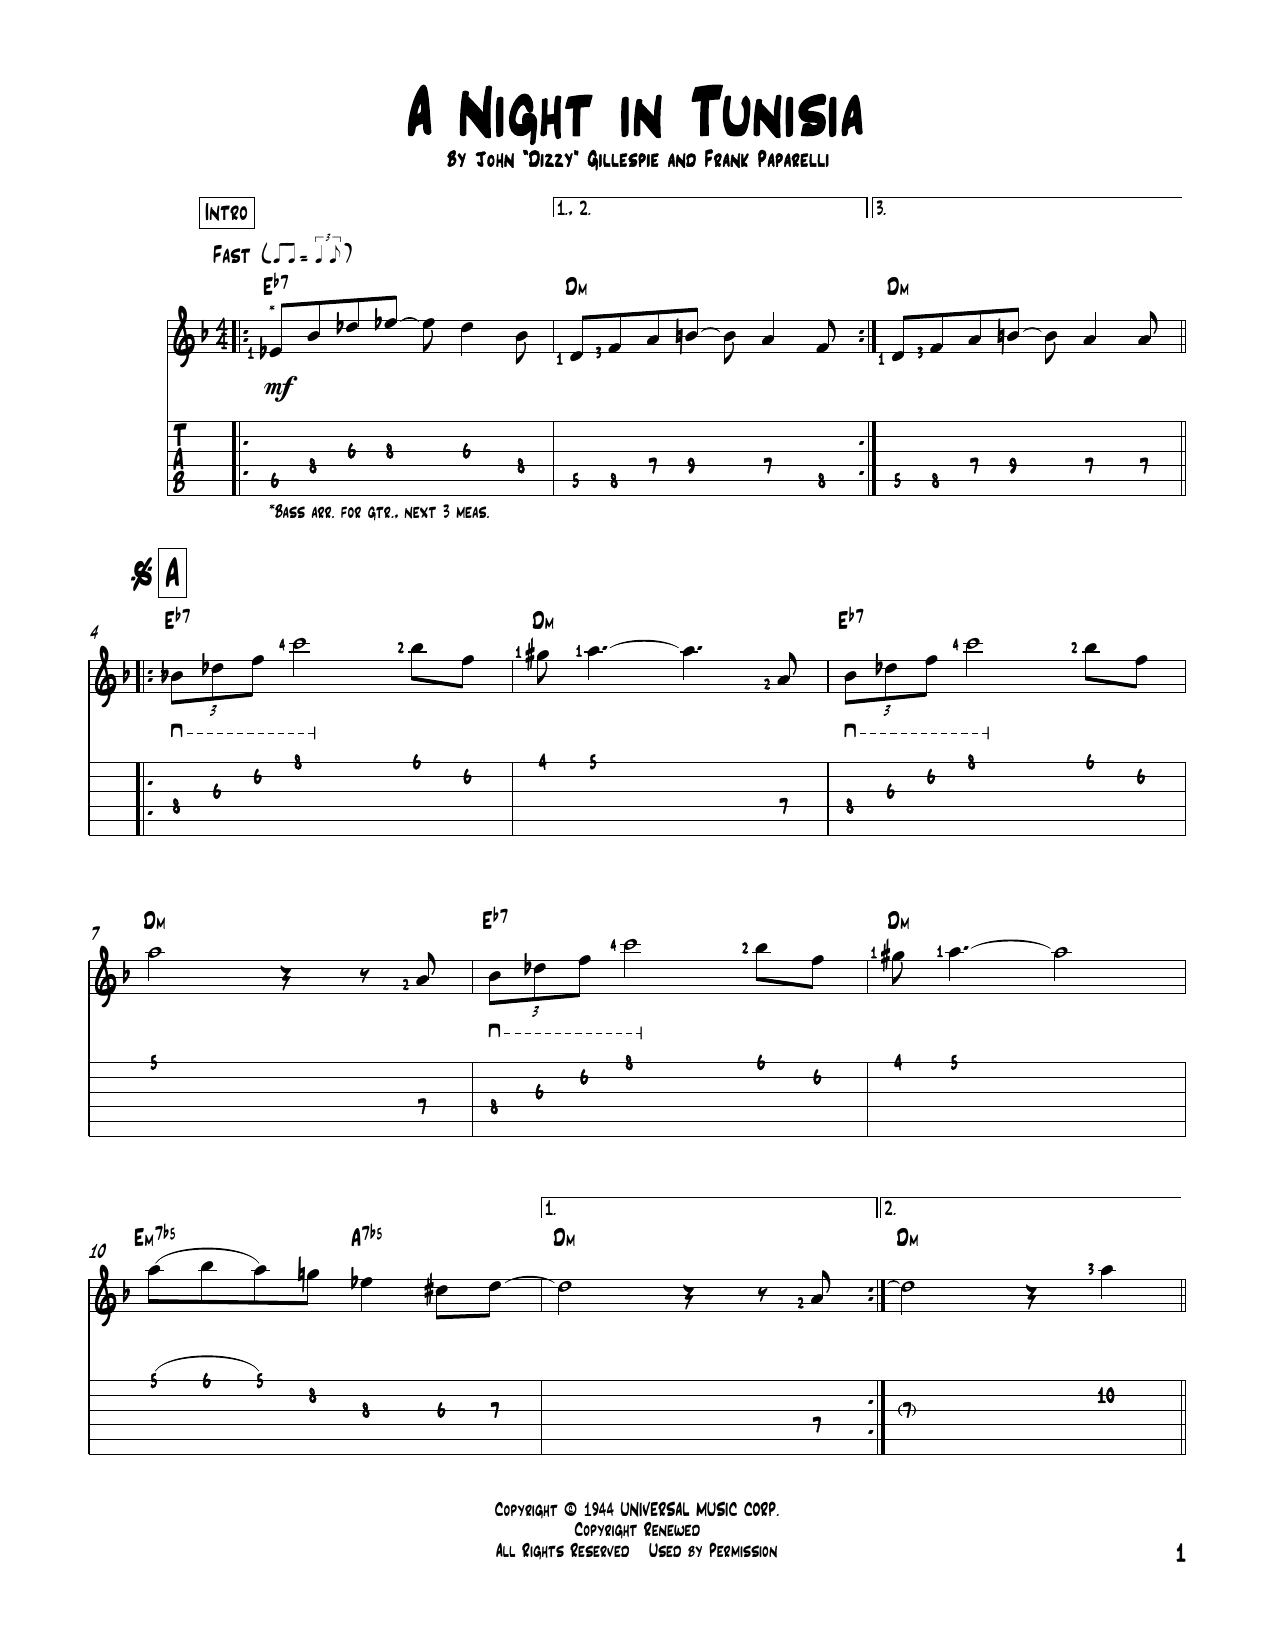 A Night In Tunisia Dizzy Gillespie Guitar Tab